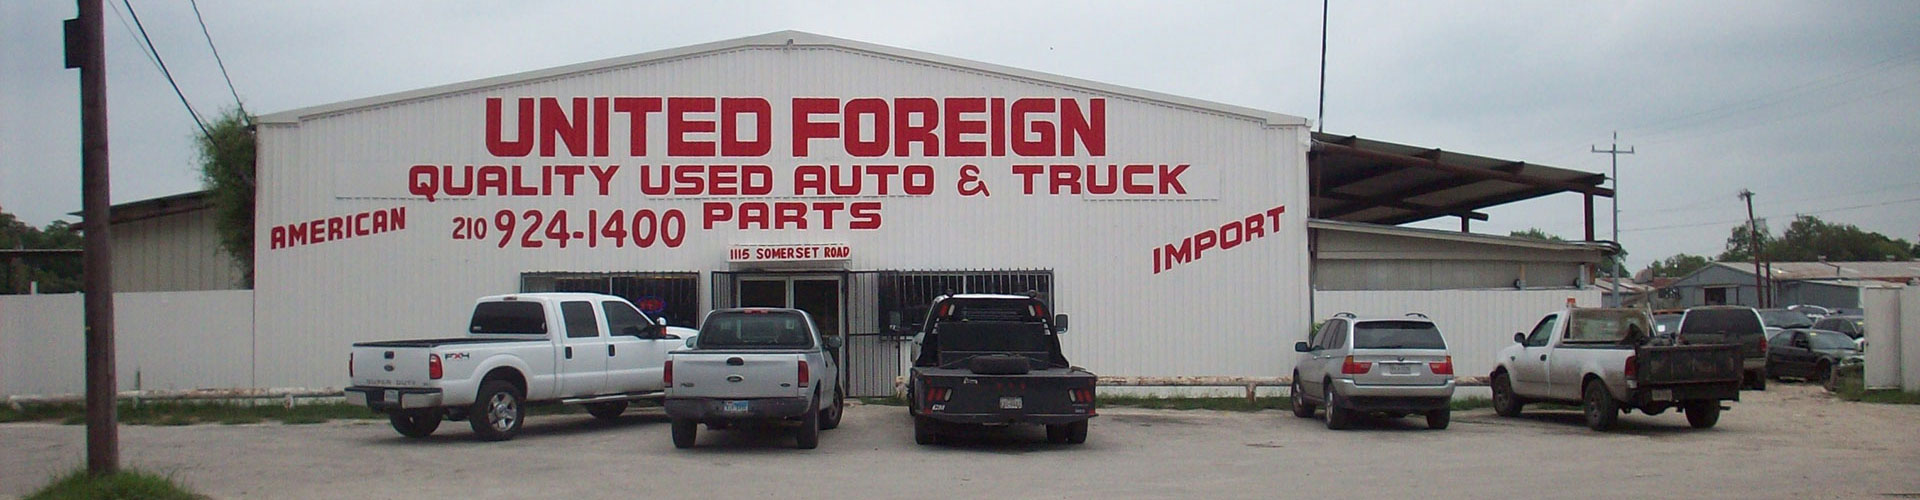 United Foreign Auto & Truck